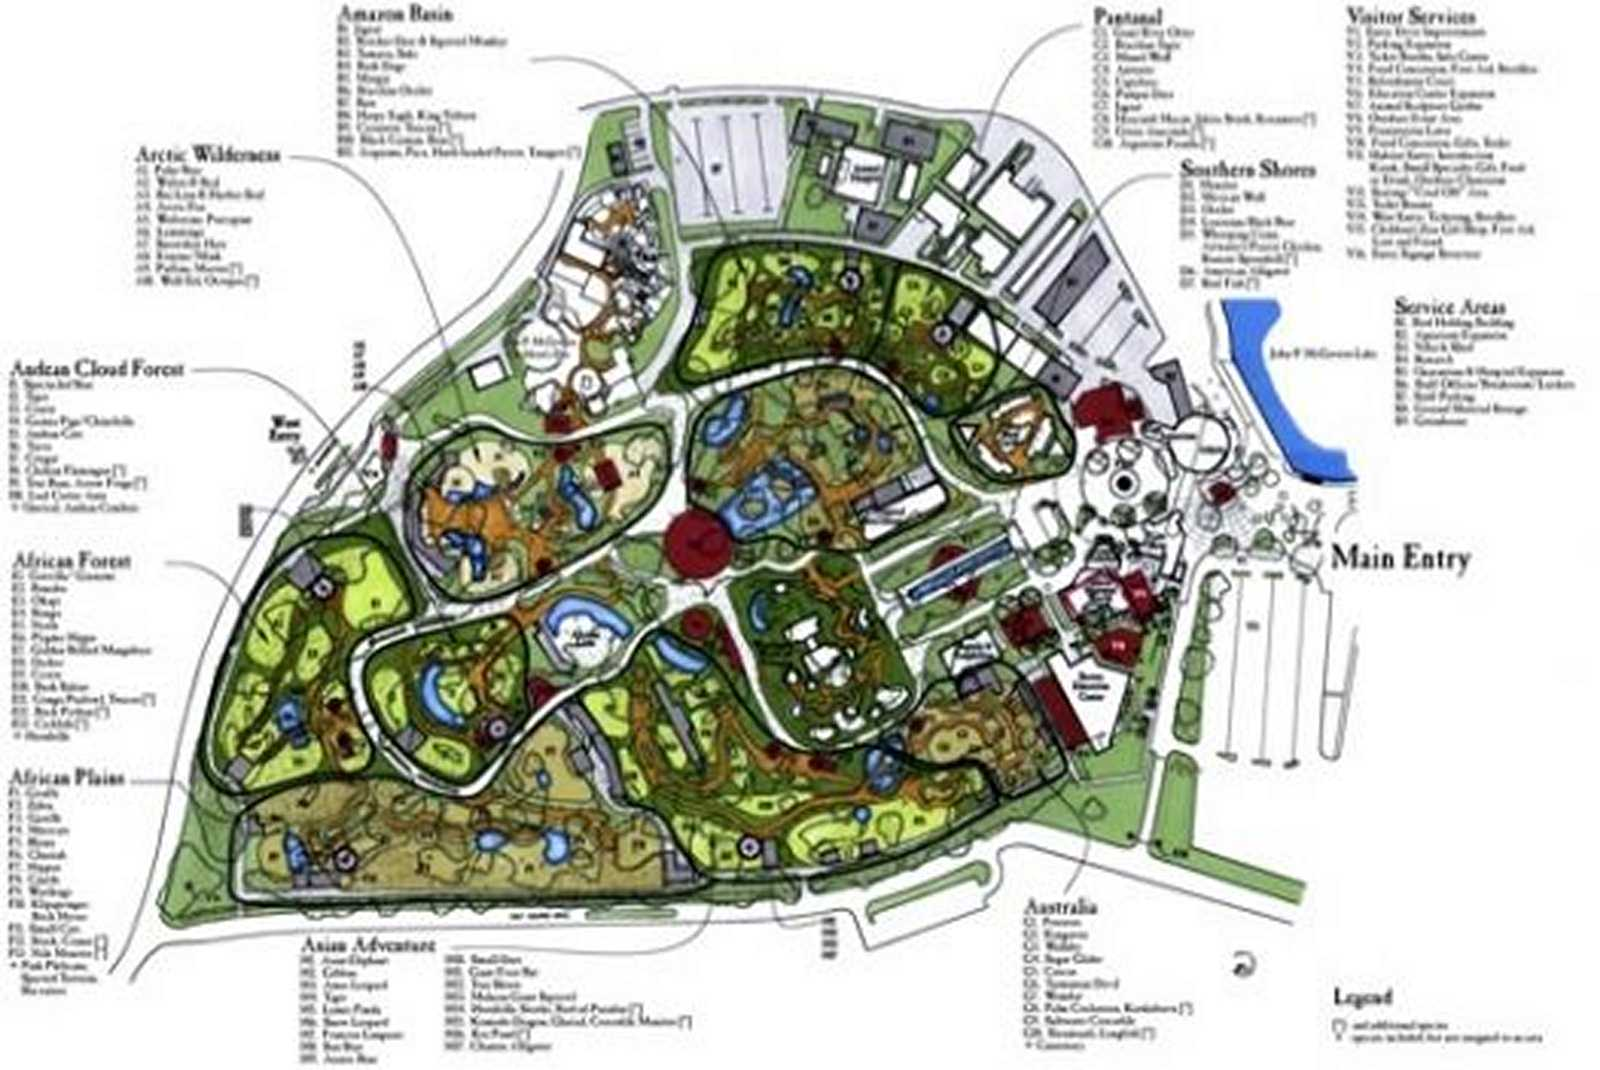 Houston zoo architect master planning firm for Architectural firms in houston